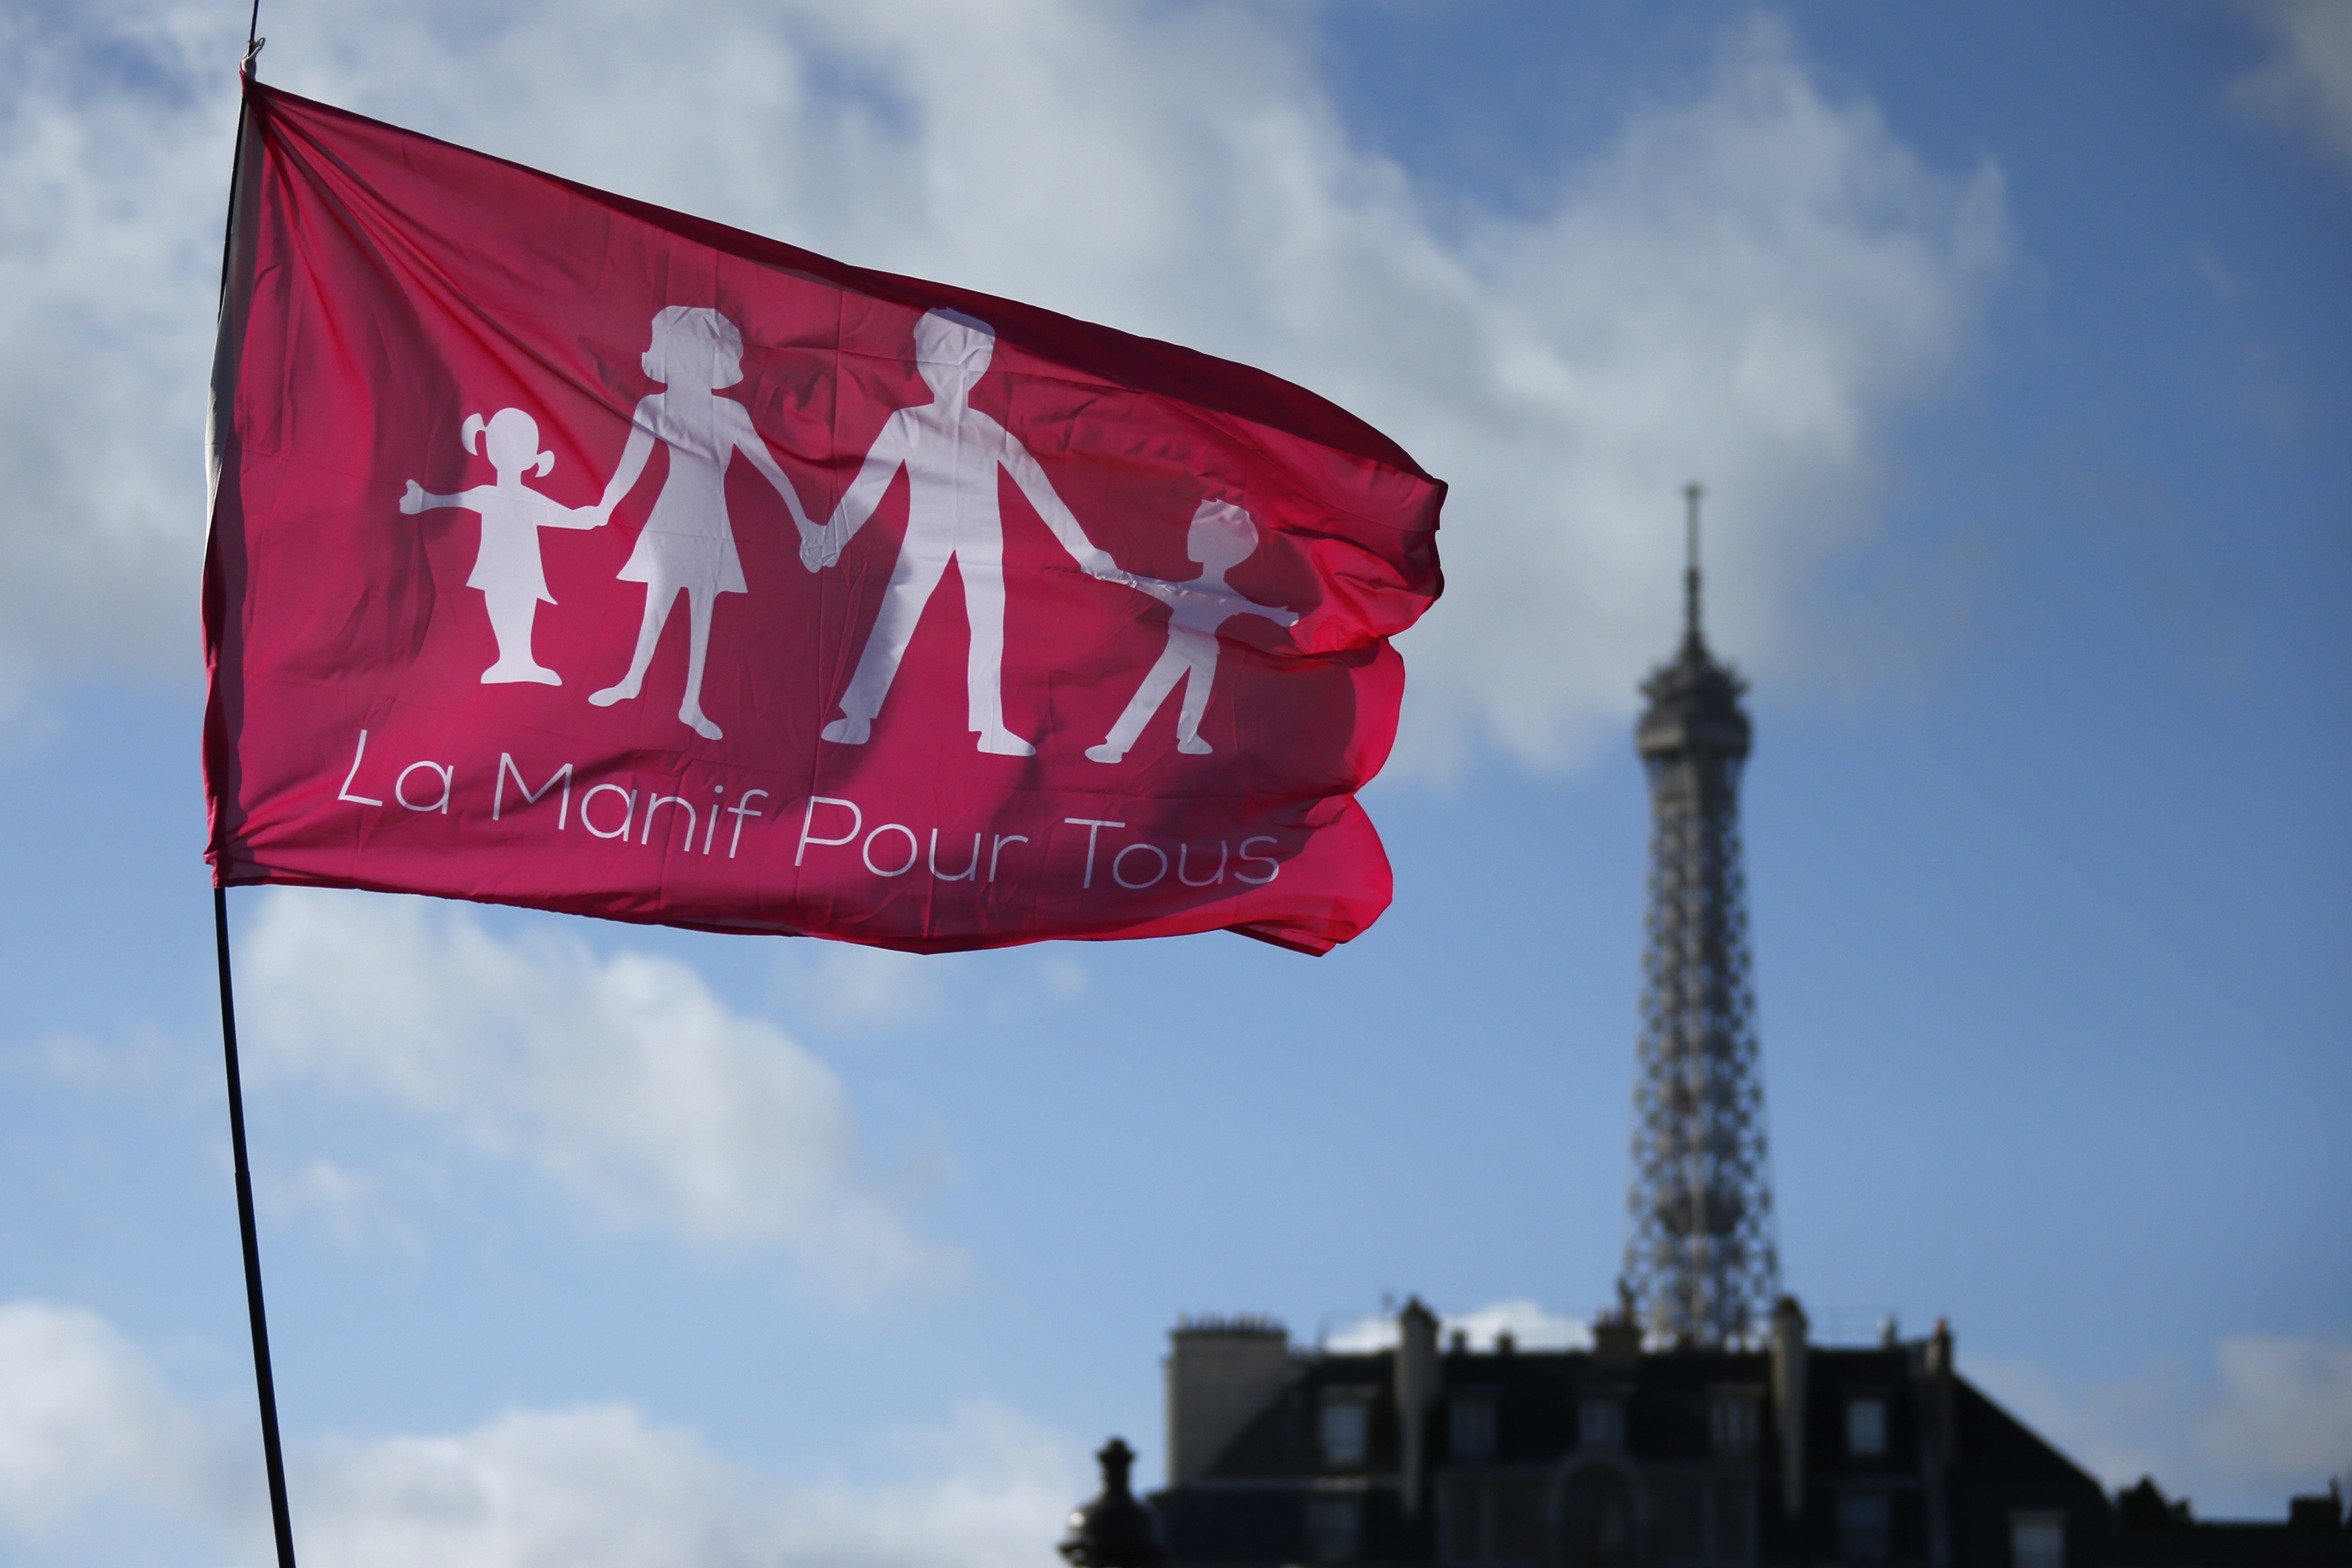 La Manif Pour Tous rally against the French same-sex marriage law in Paris